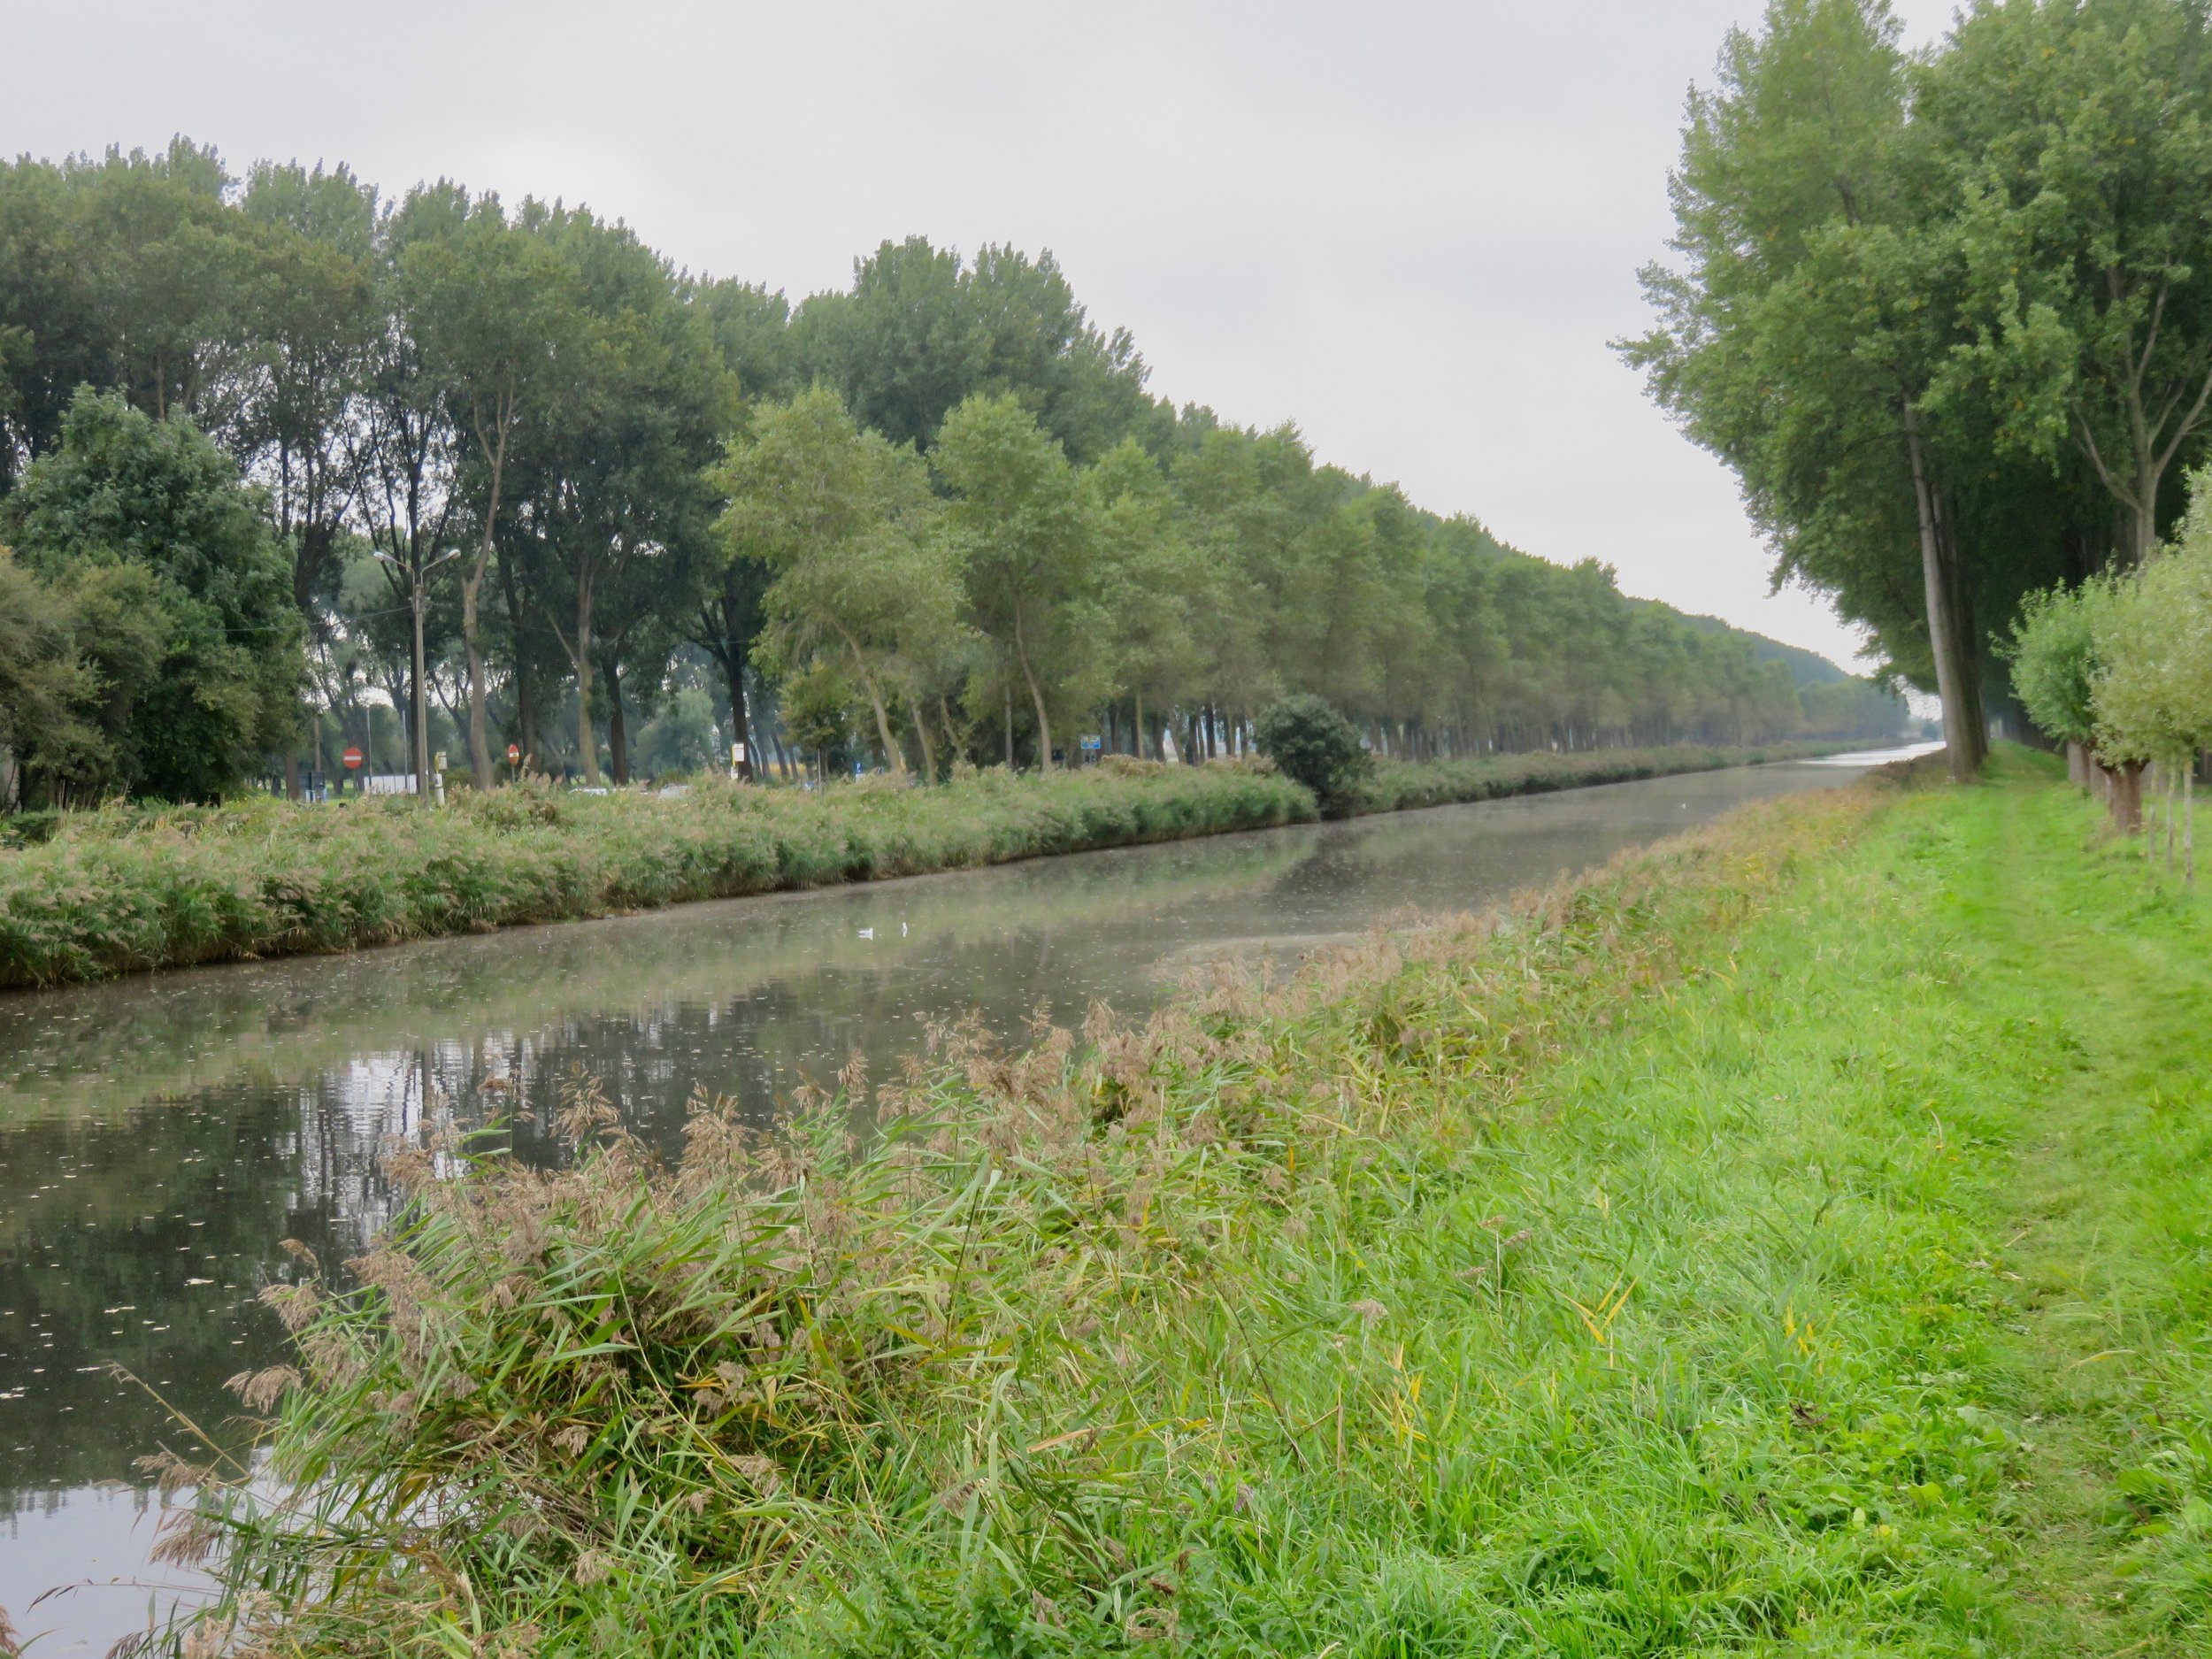 We get to see the real Rembrandt countryside on our bike ride to Damme.